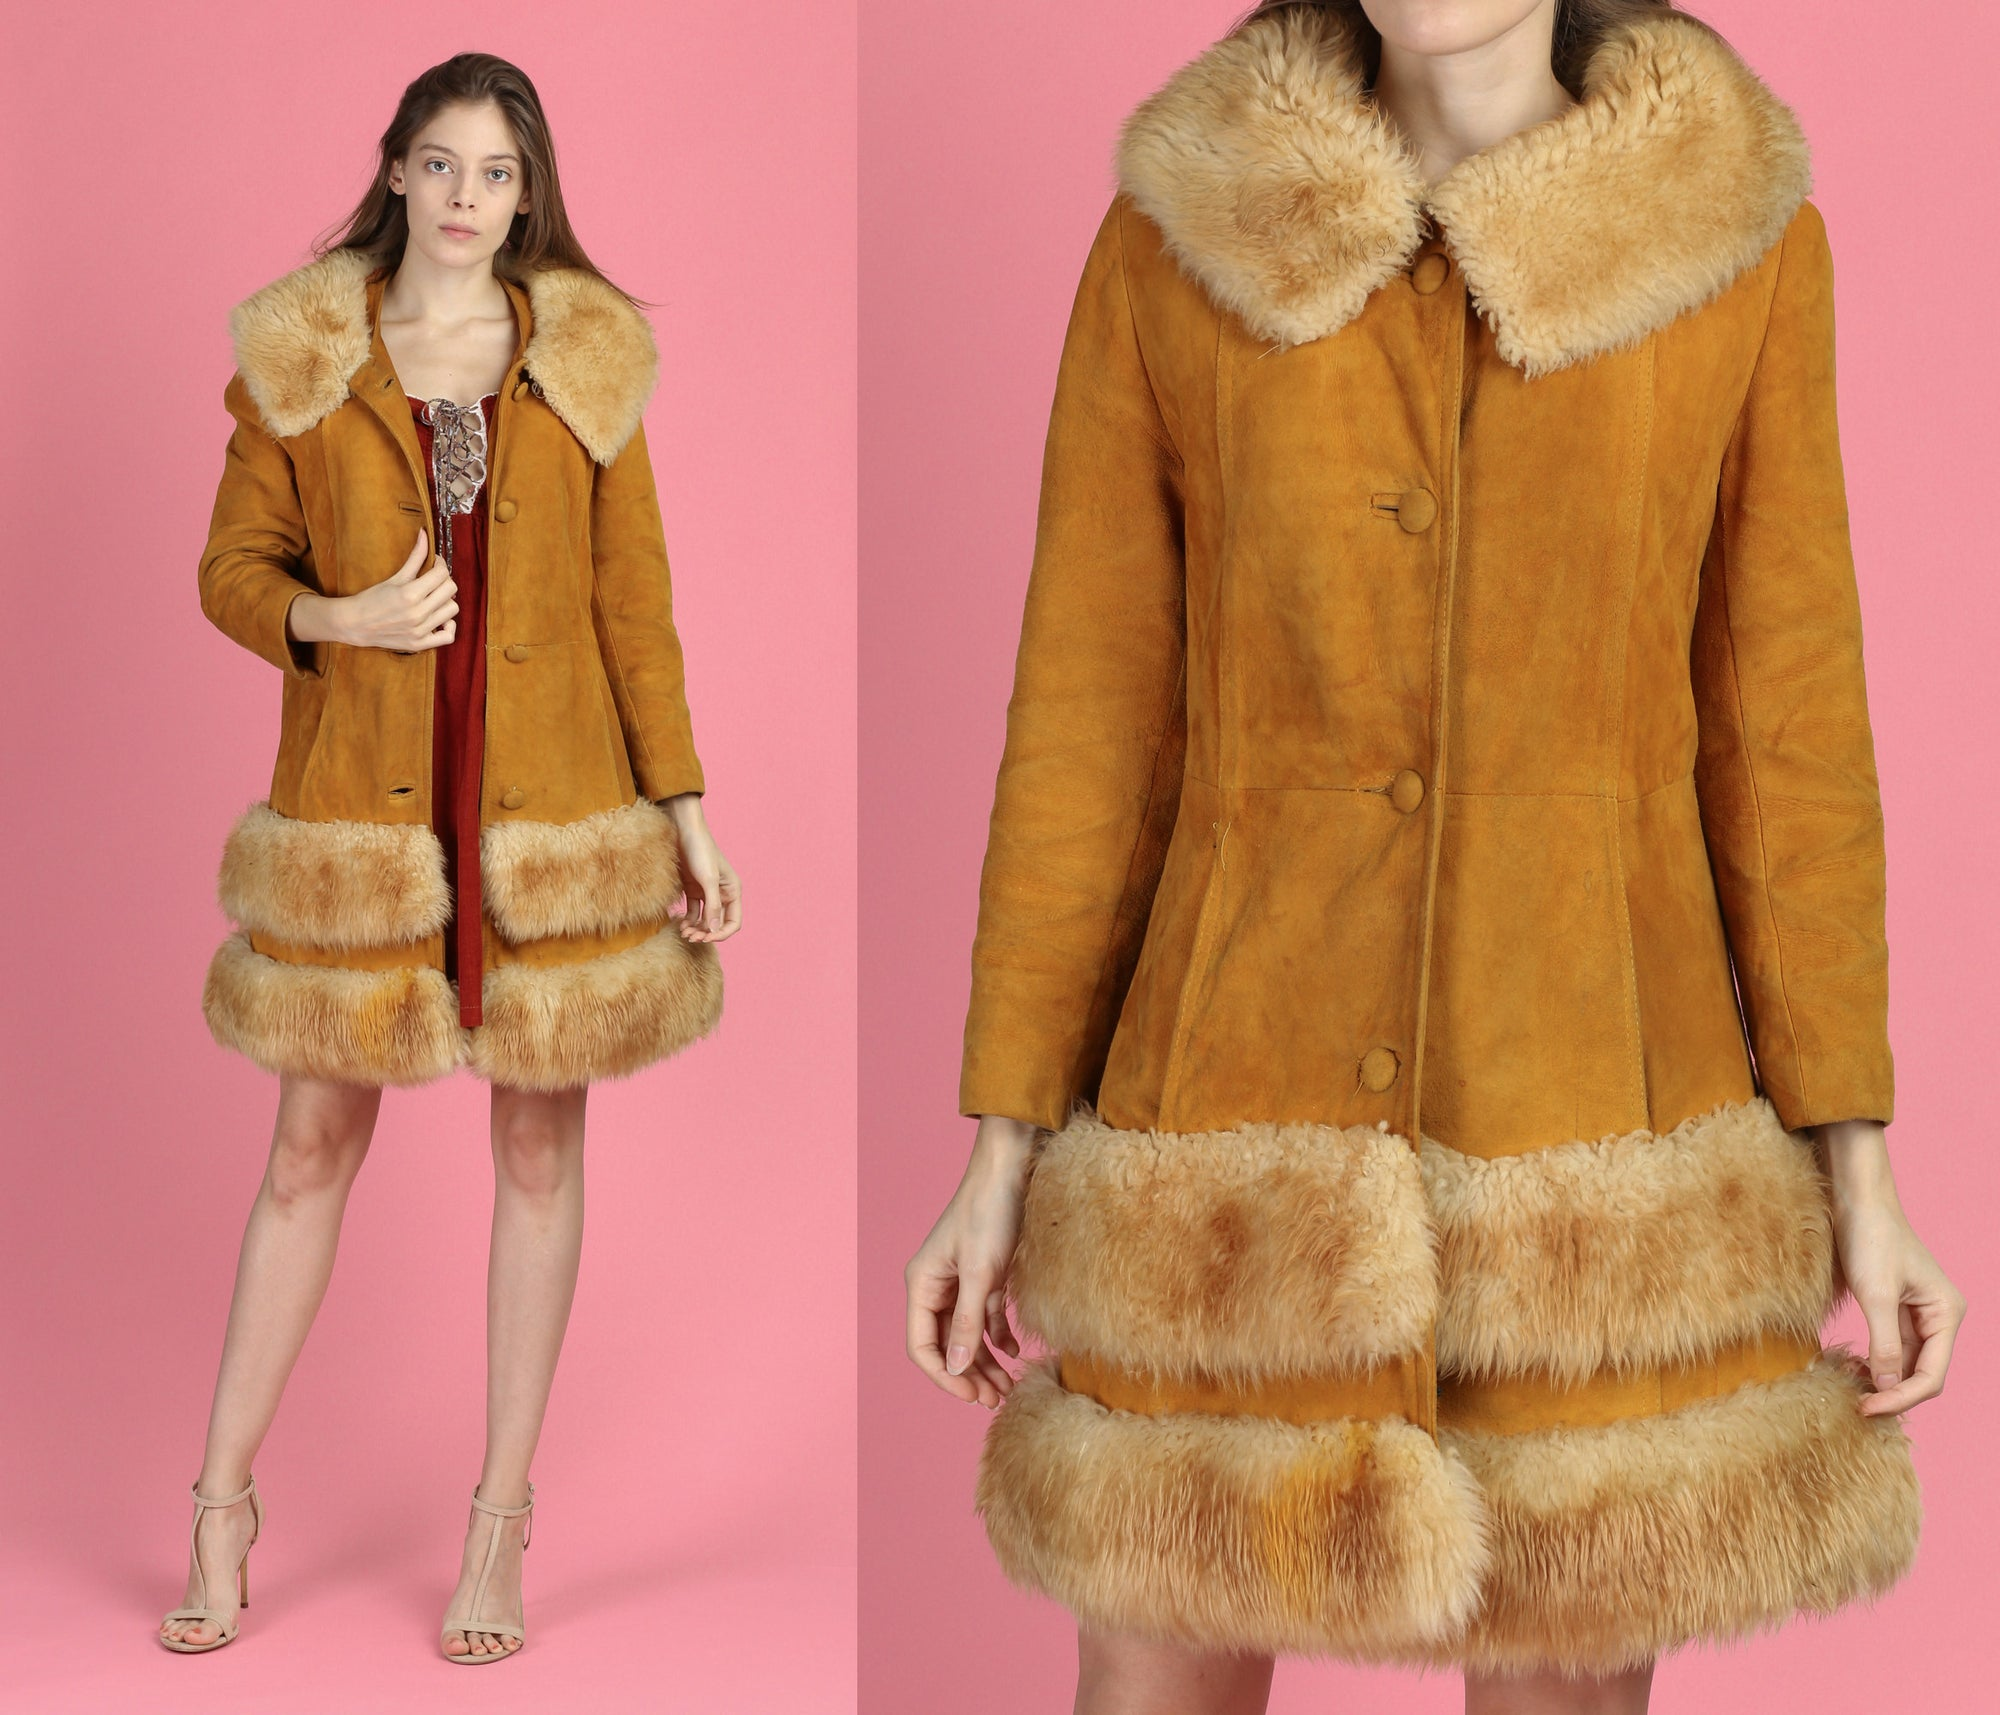 70s Penny Lane Suede Faux Fur Trim Jacket - Small